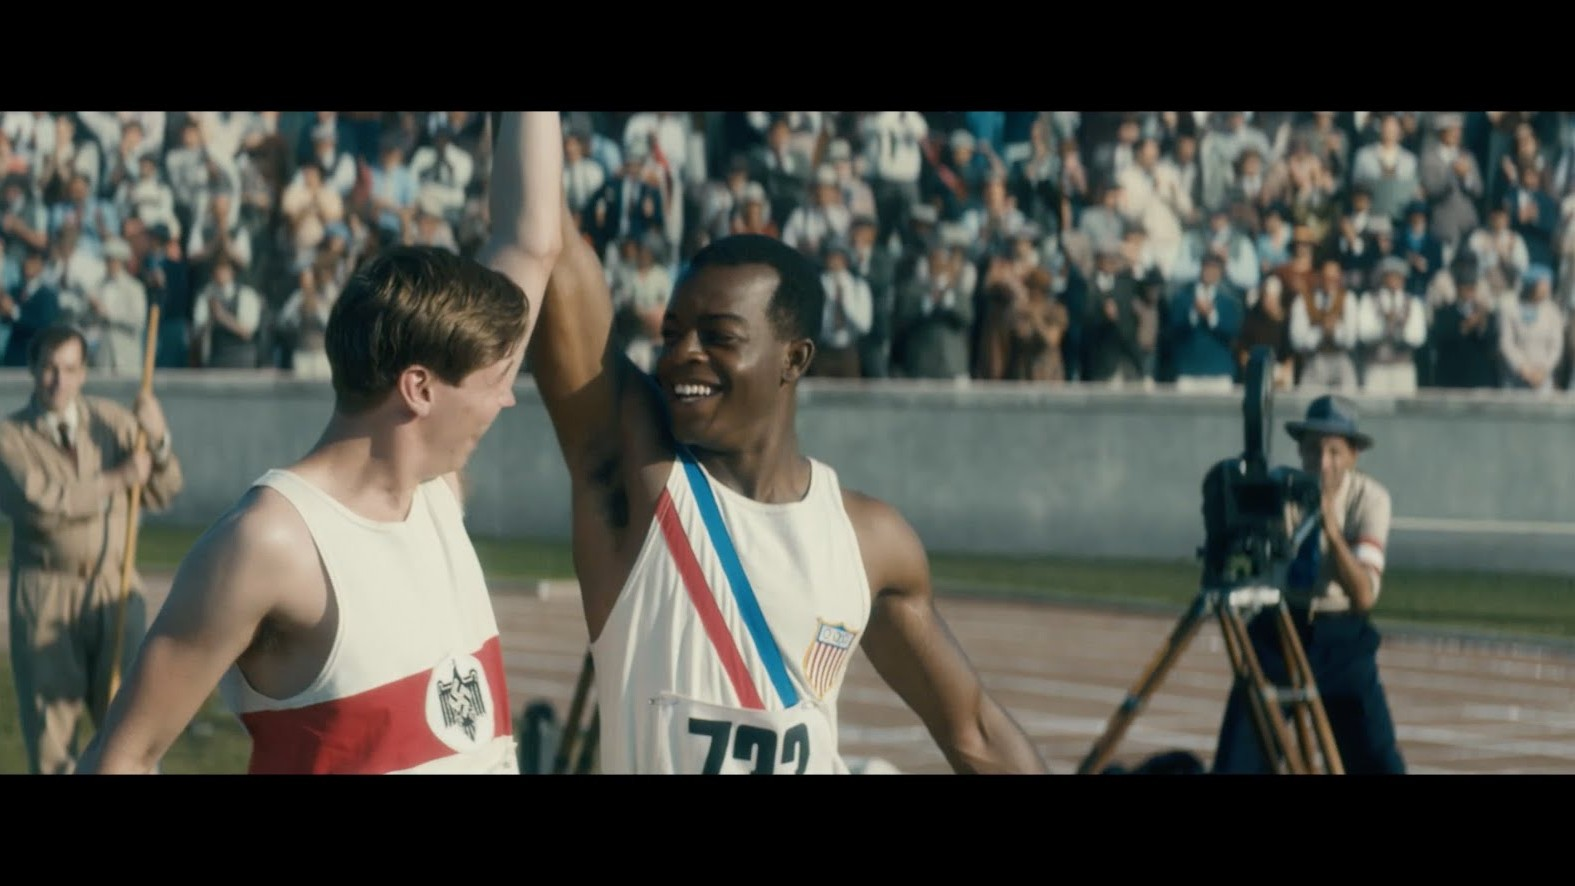 RACE – 'Sportsmanship' Clip – In Theaters February 19